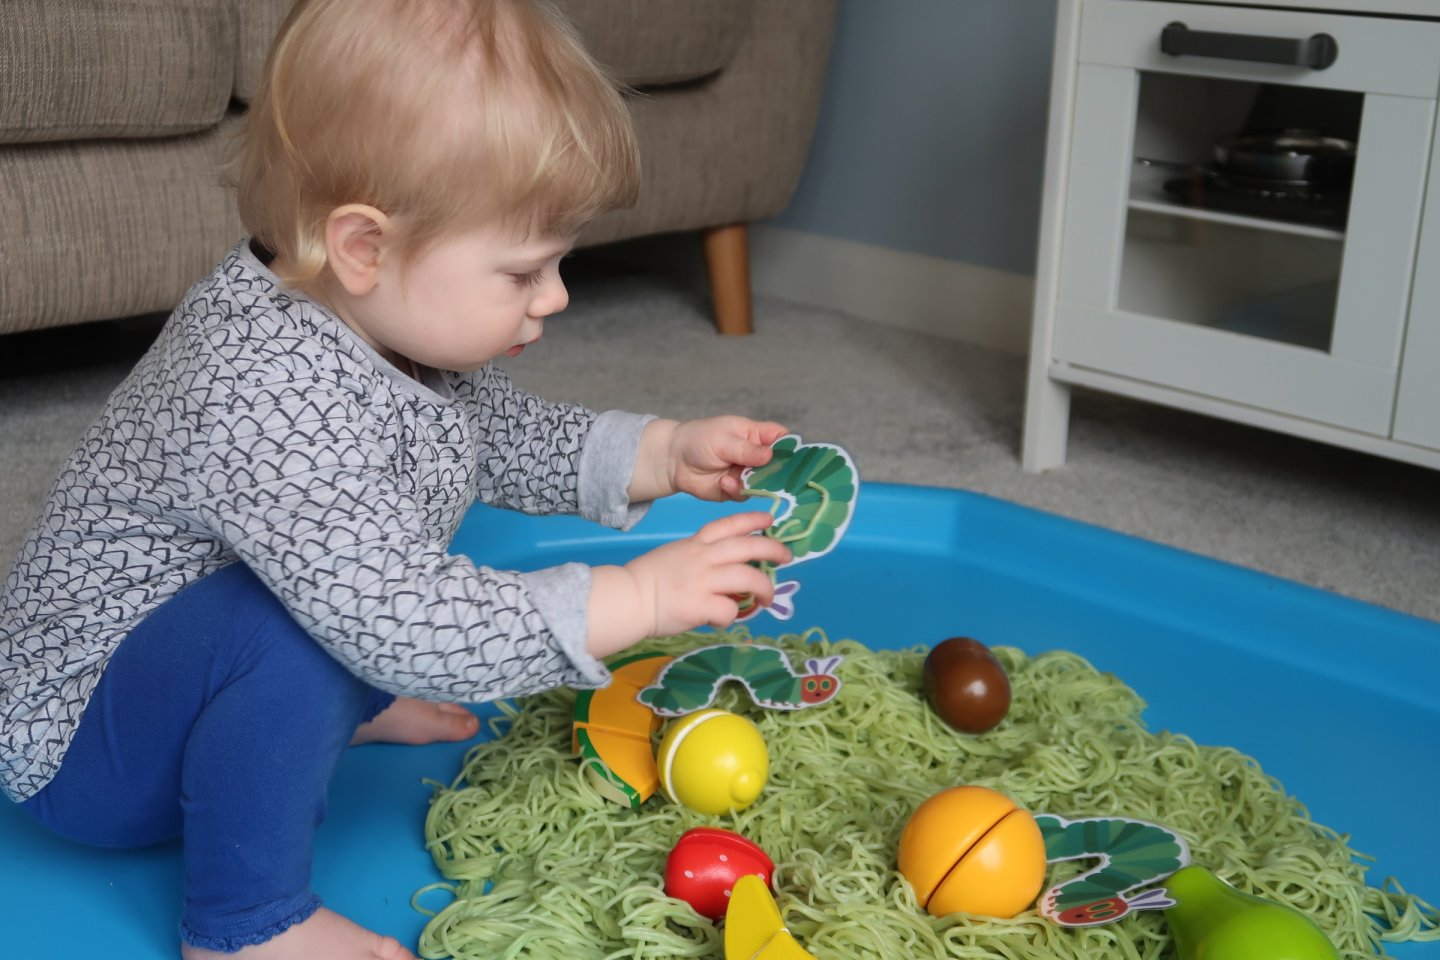 The Very Hungry Caterpillar EYFS activity